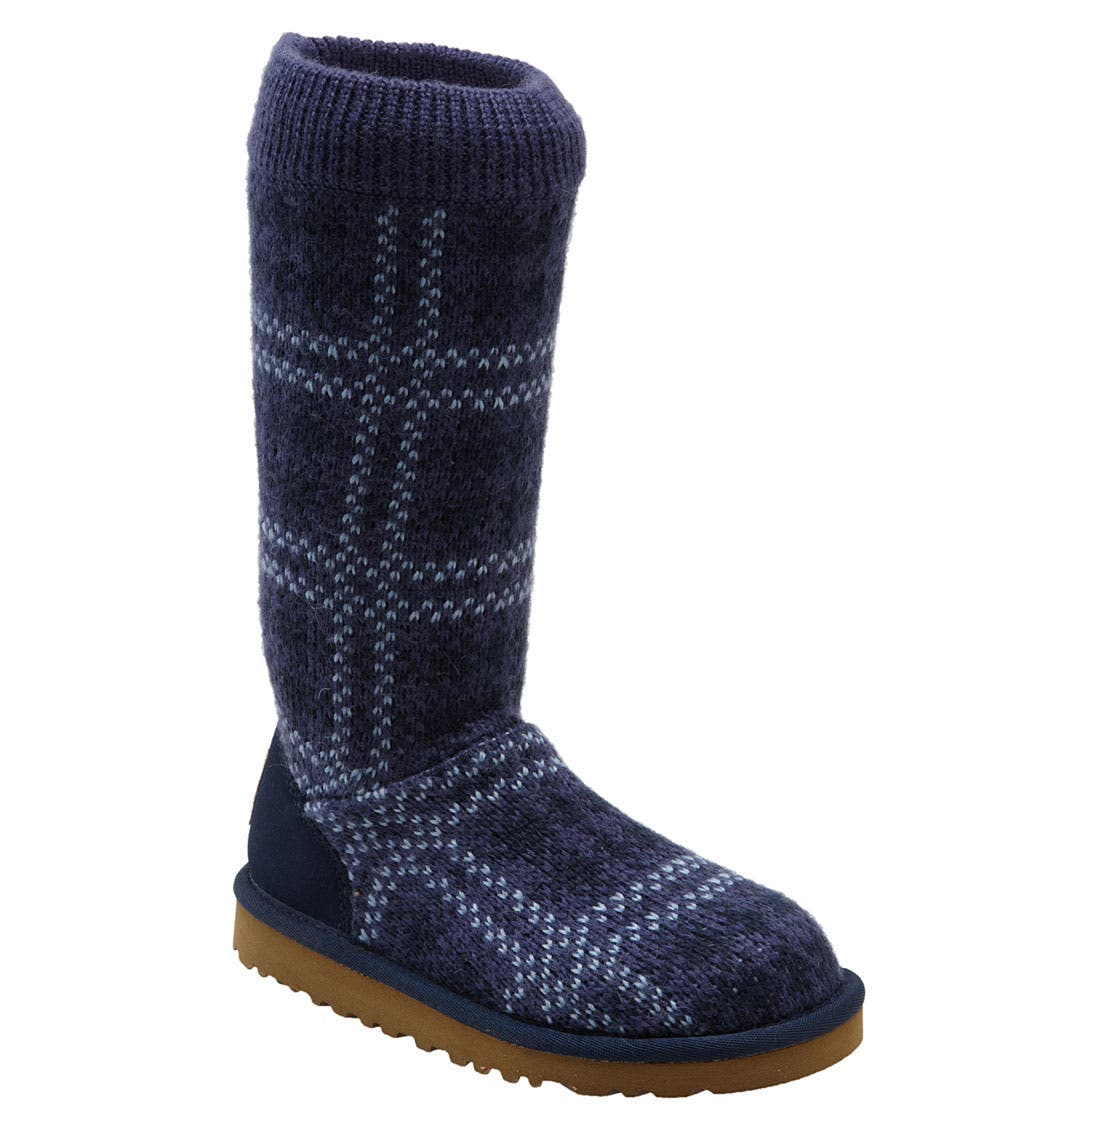 Alternate Image 1 Selected - UGG® Australia Plaid Knit Boot (Toddler, Little Kid & Big Kid)